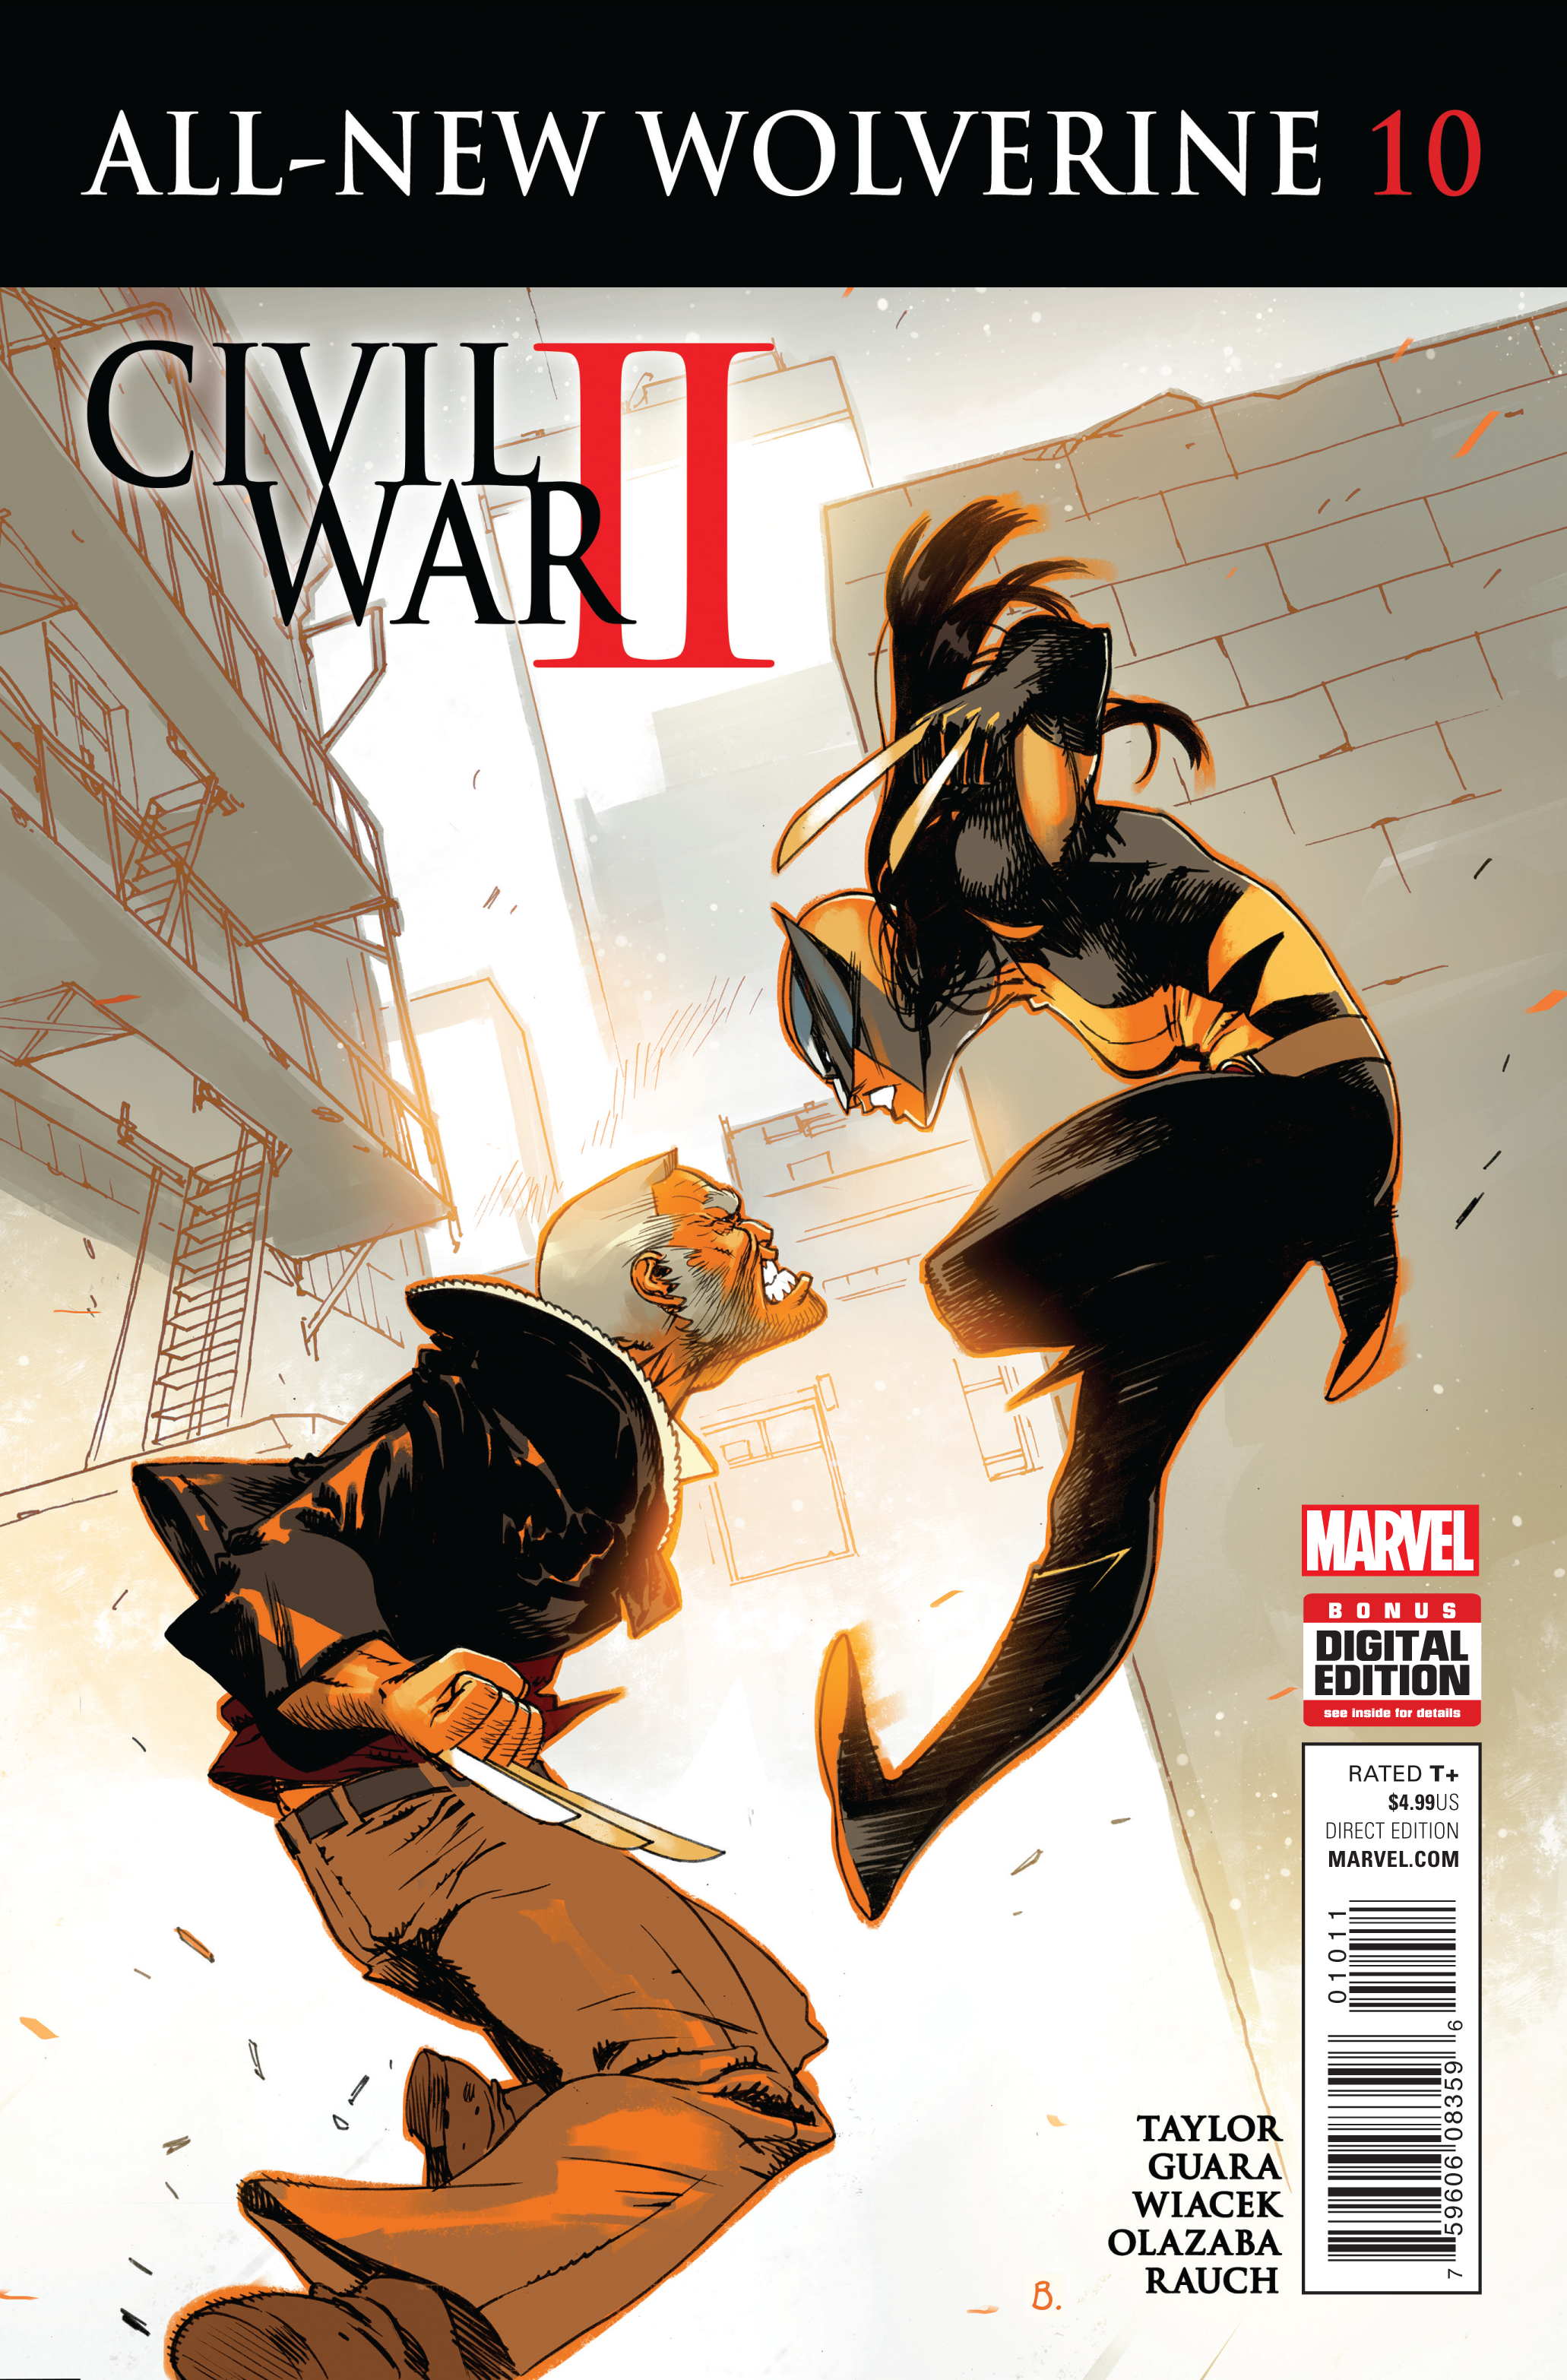 ALL NEW WOLVERINE #10 CW2